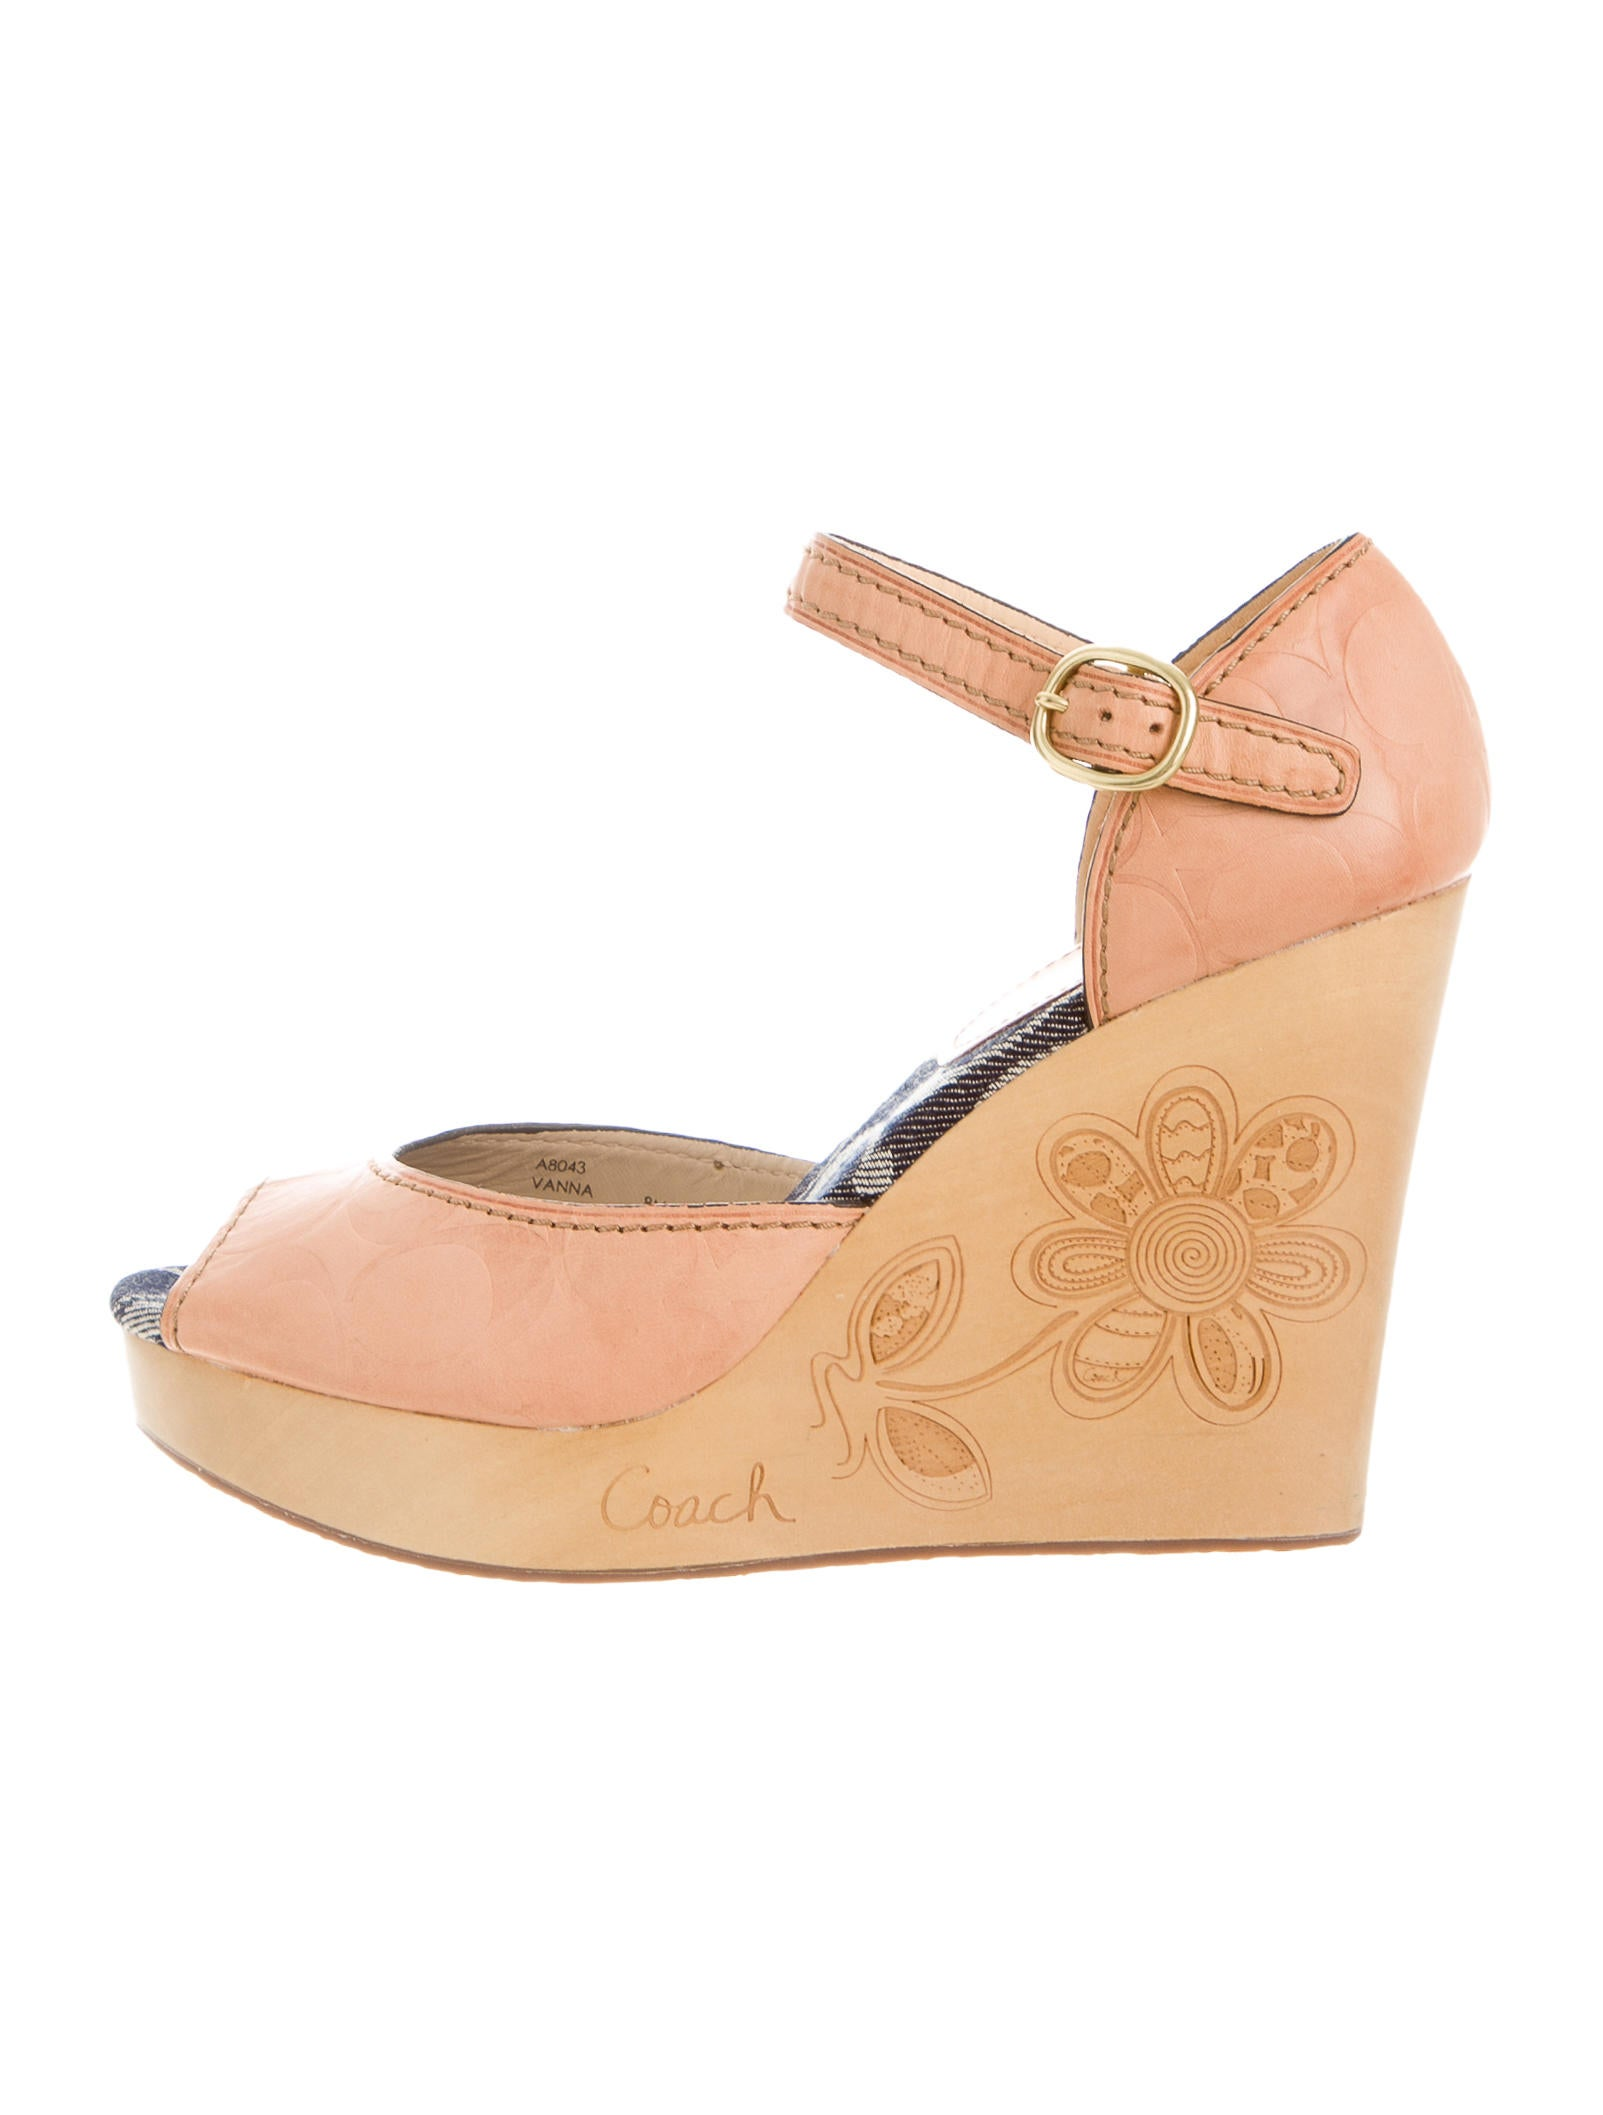 coach monogram vanna wedges shoes cch20343 the realreal